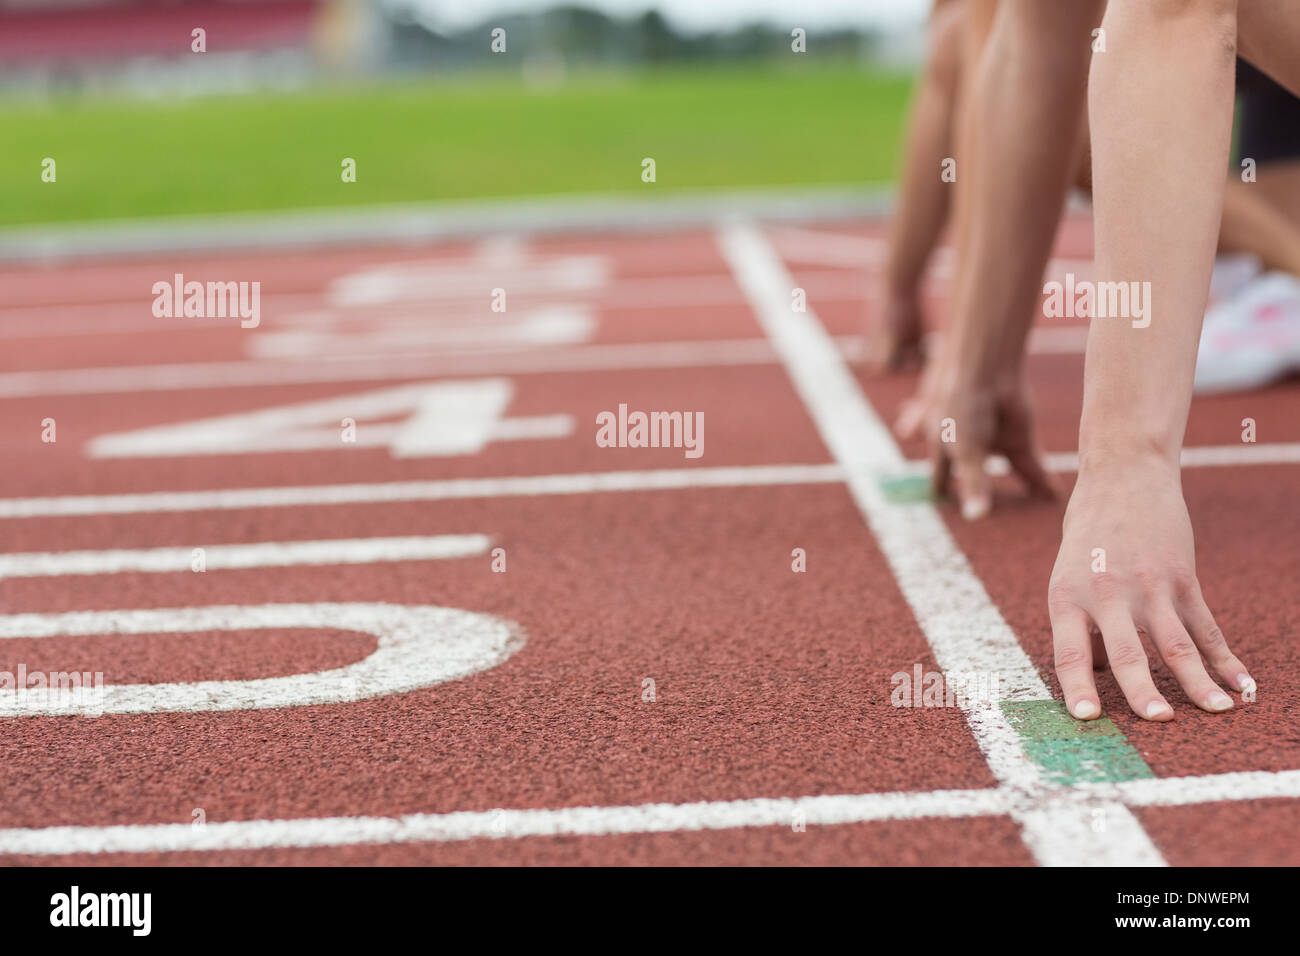 Cropped people ready to race on track field - Stock Image